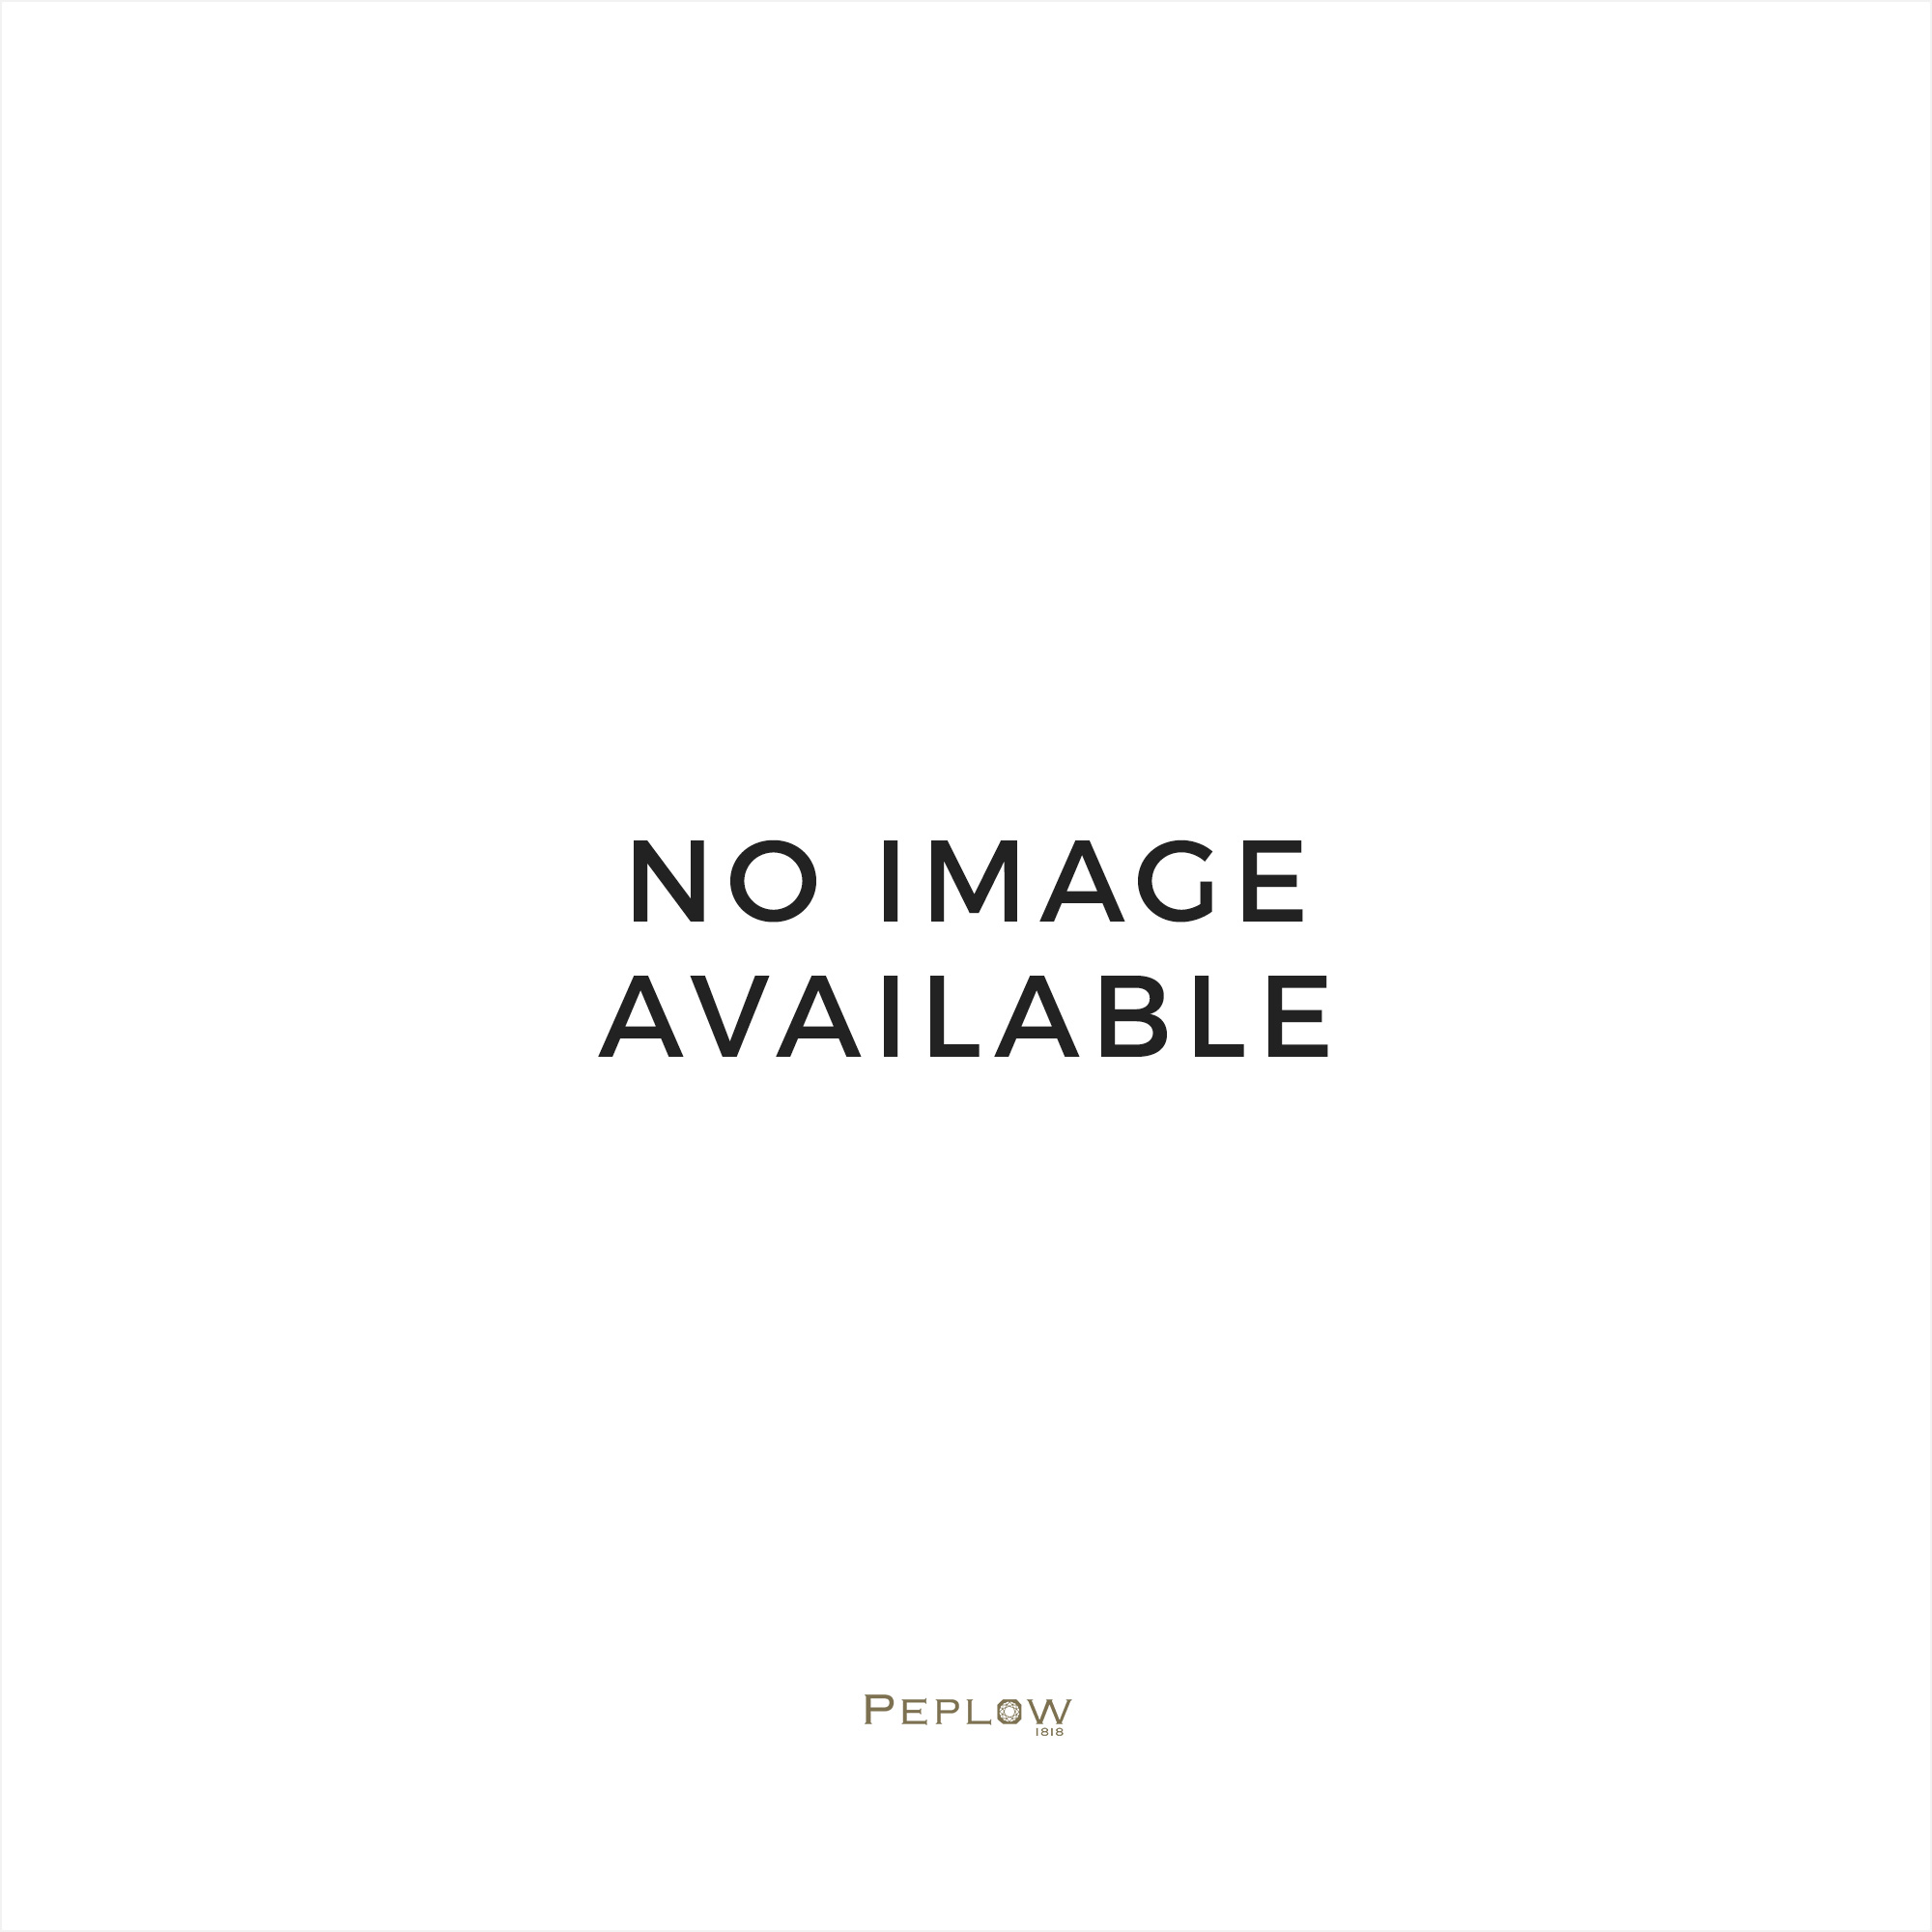 Royal Selangor Fairy Tale Little Red Riding Hood Bookends 16249R